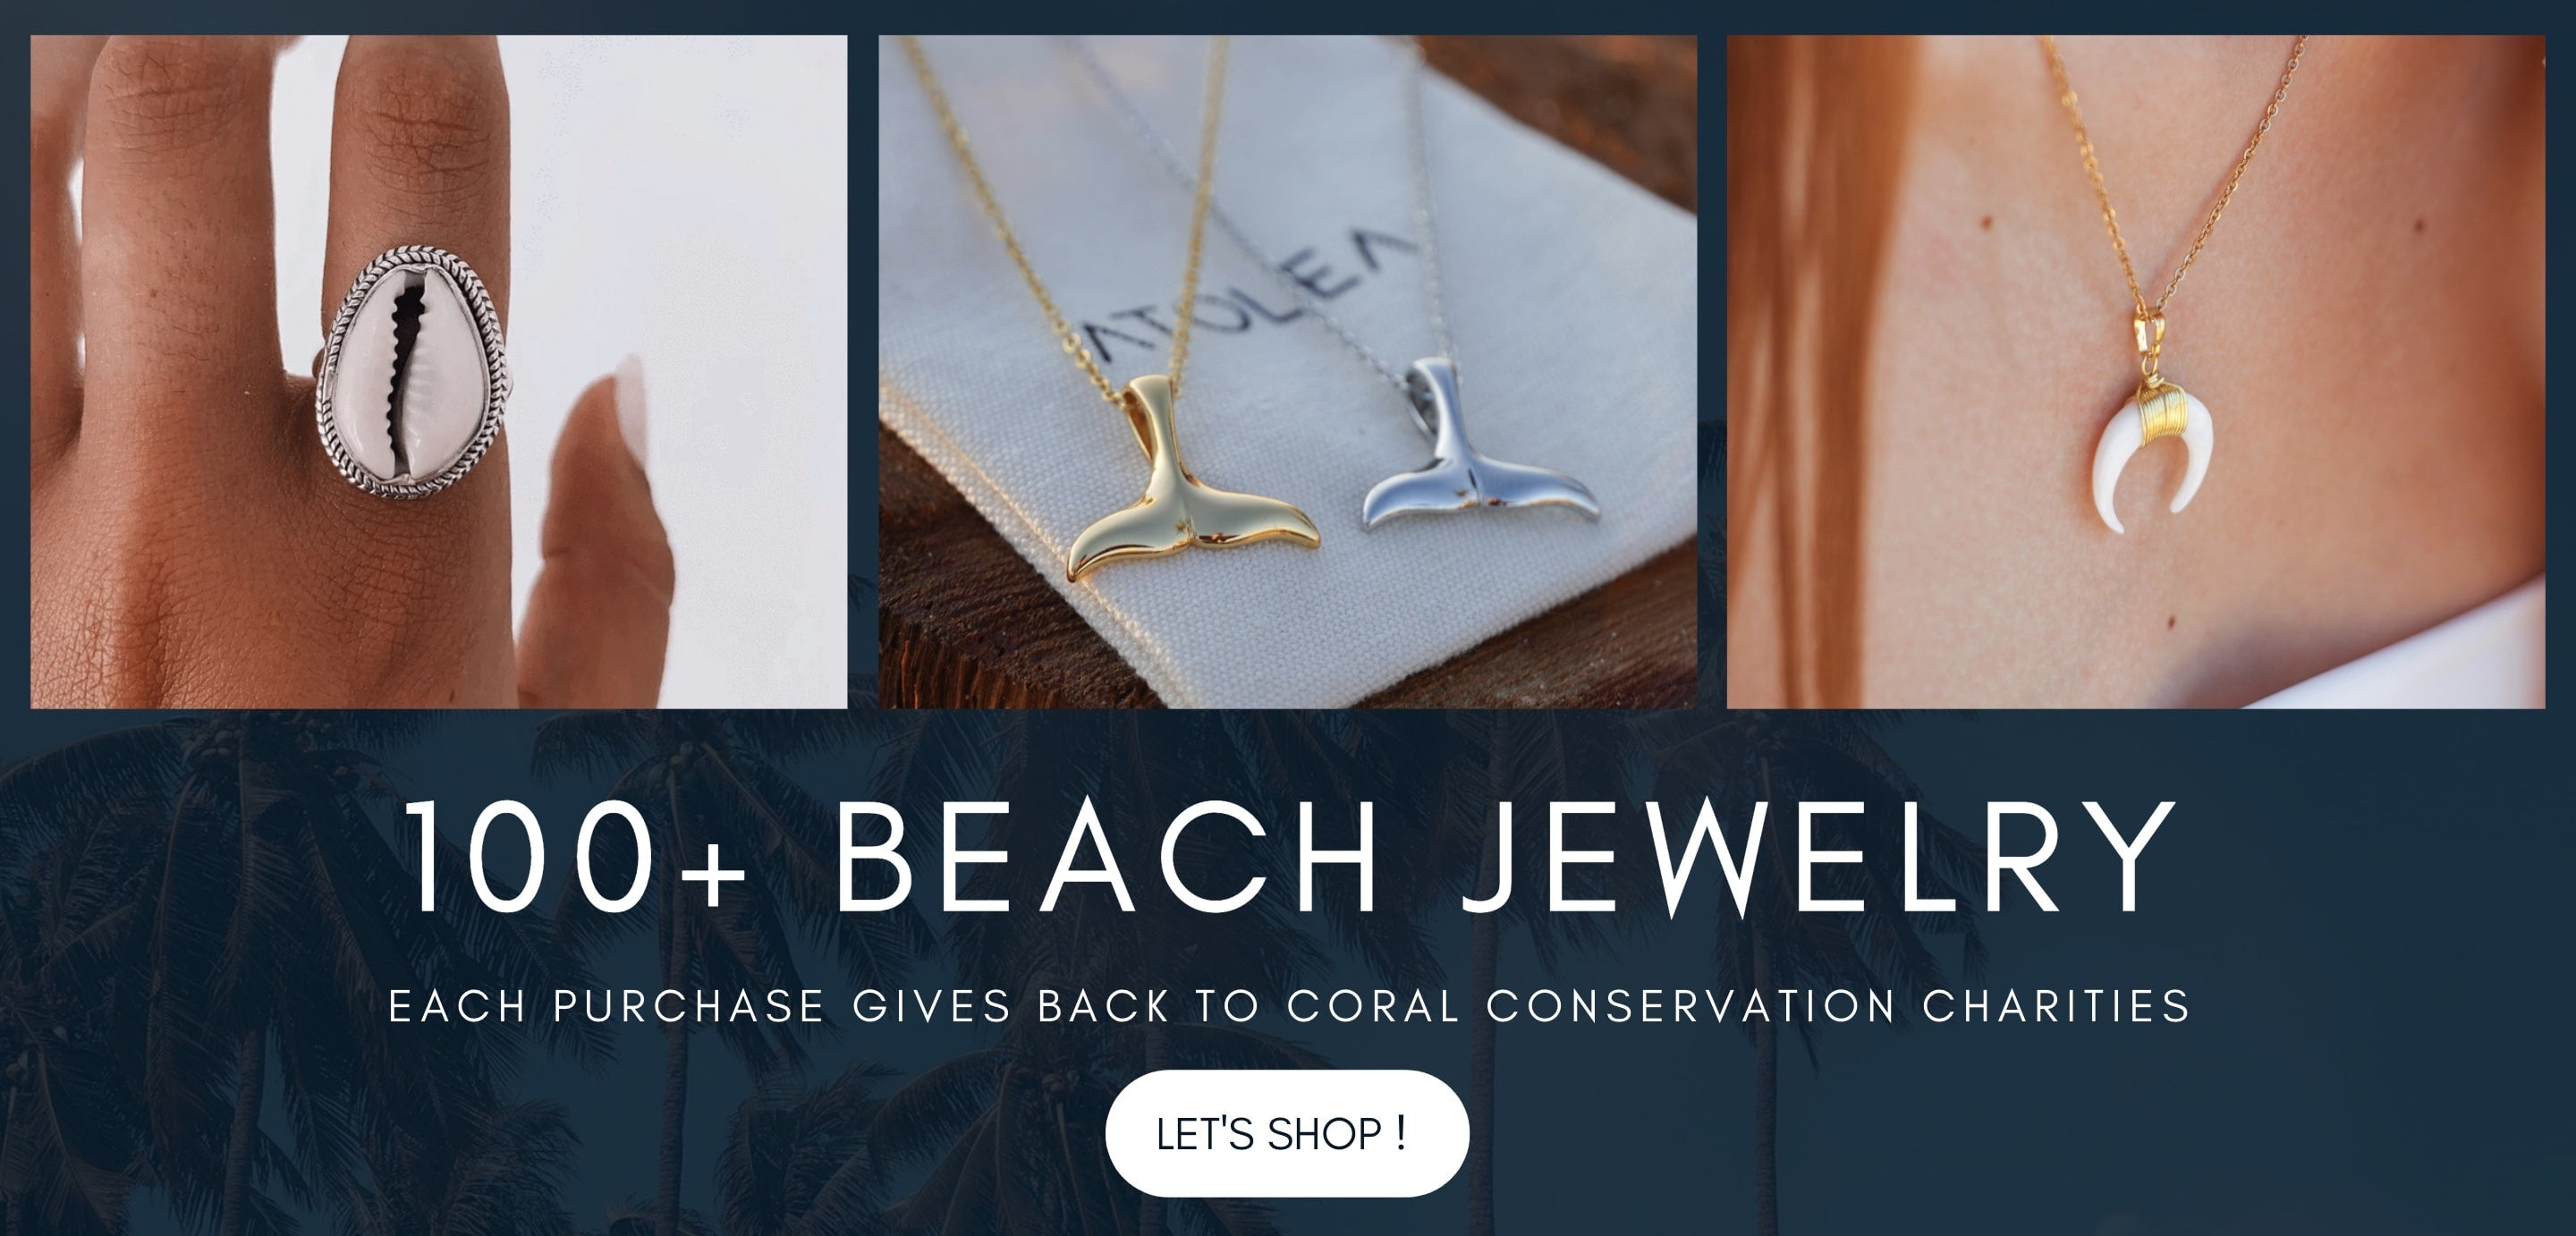 beachwear jewelry